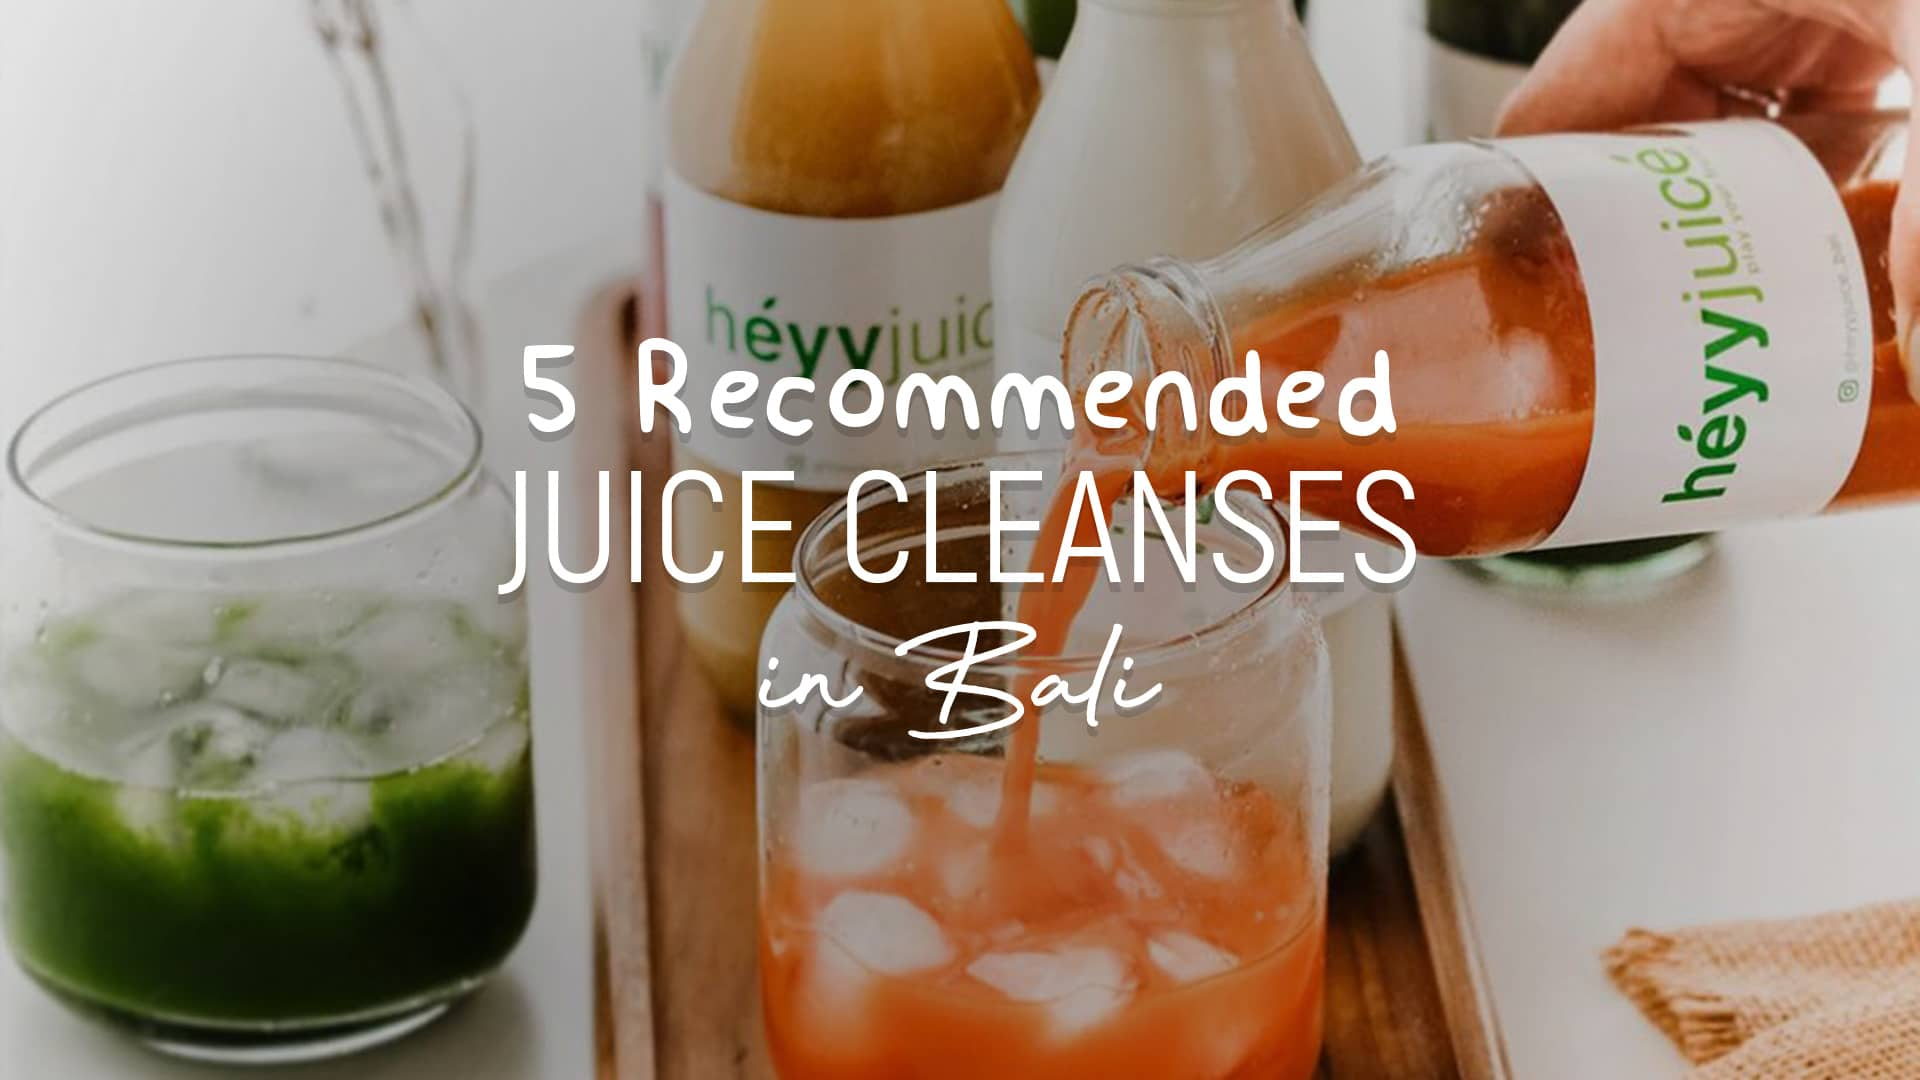 5 recommended juice cleanses in Bali